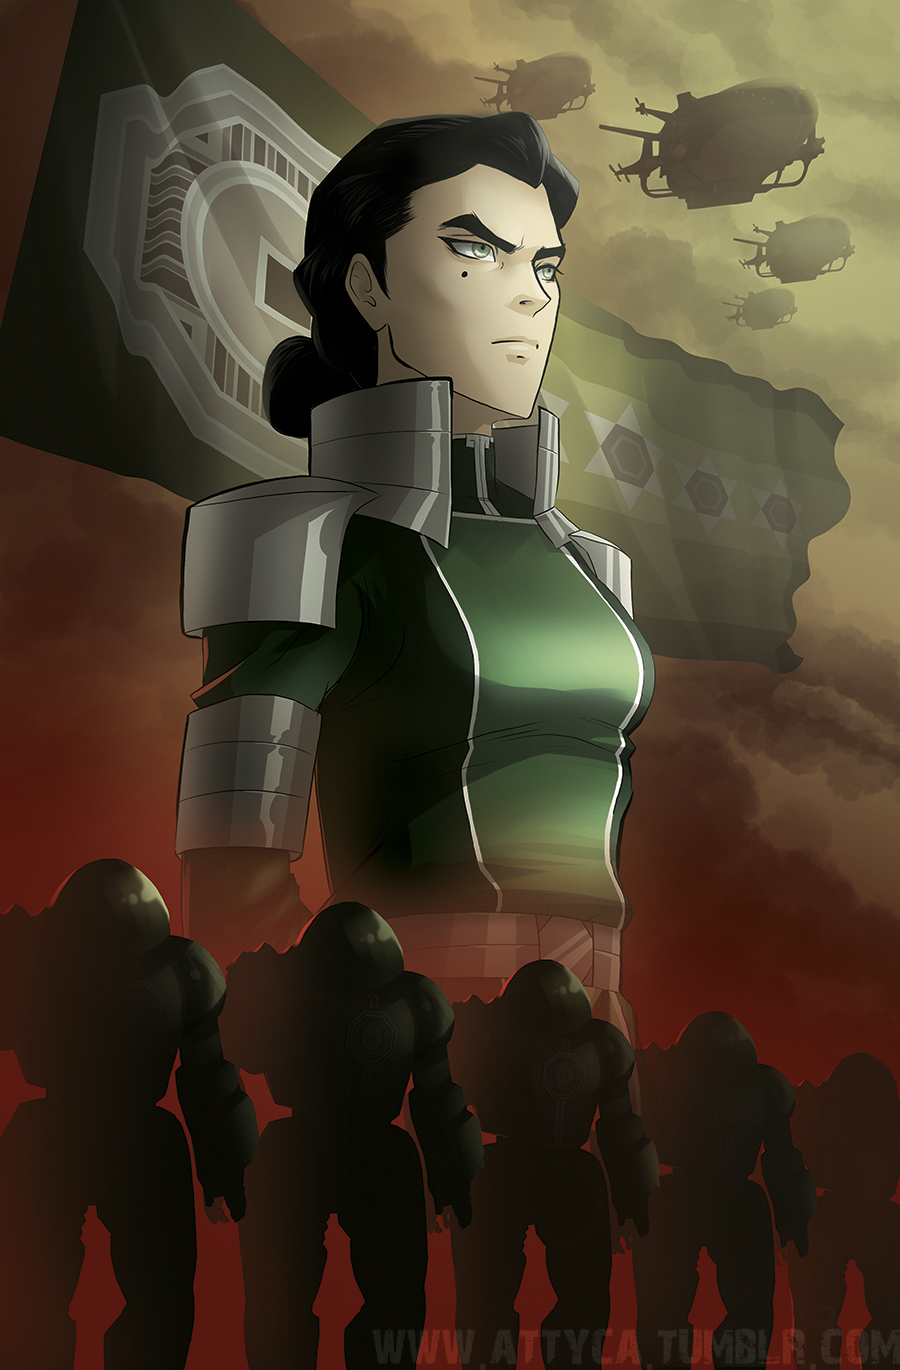 Futurist Anime Girl Wallpaper Kuvira An Appraisal Of The Woman And Her Works The